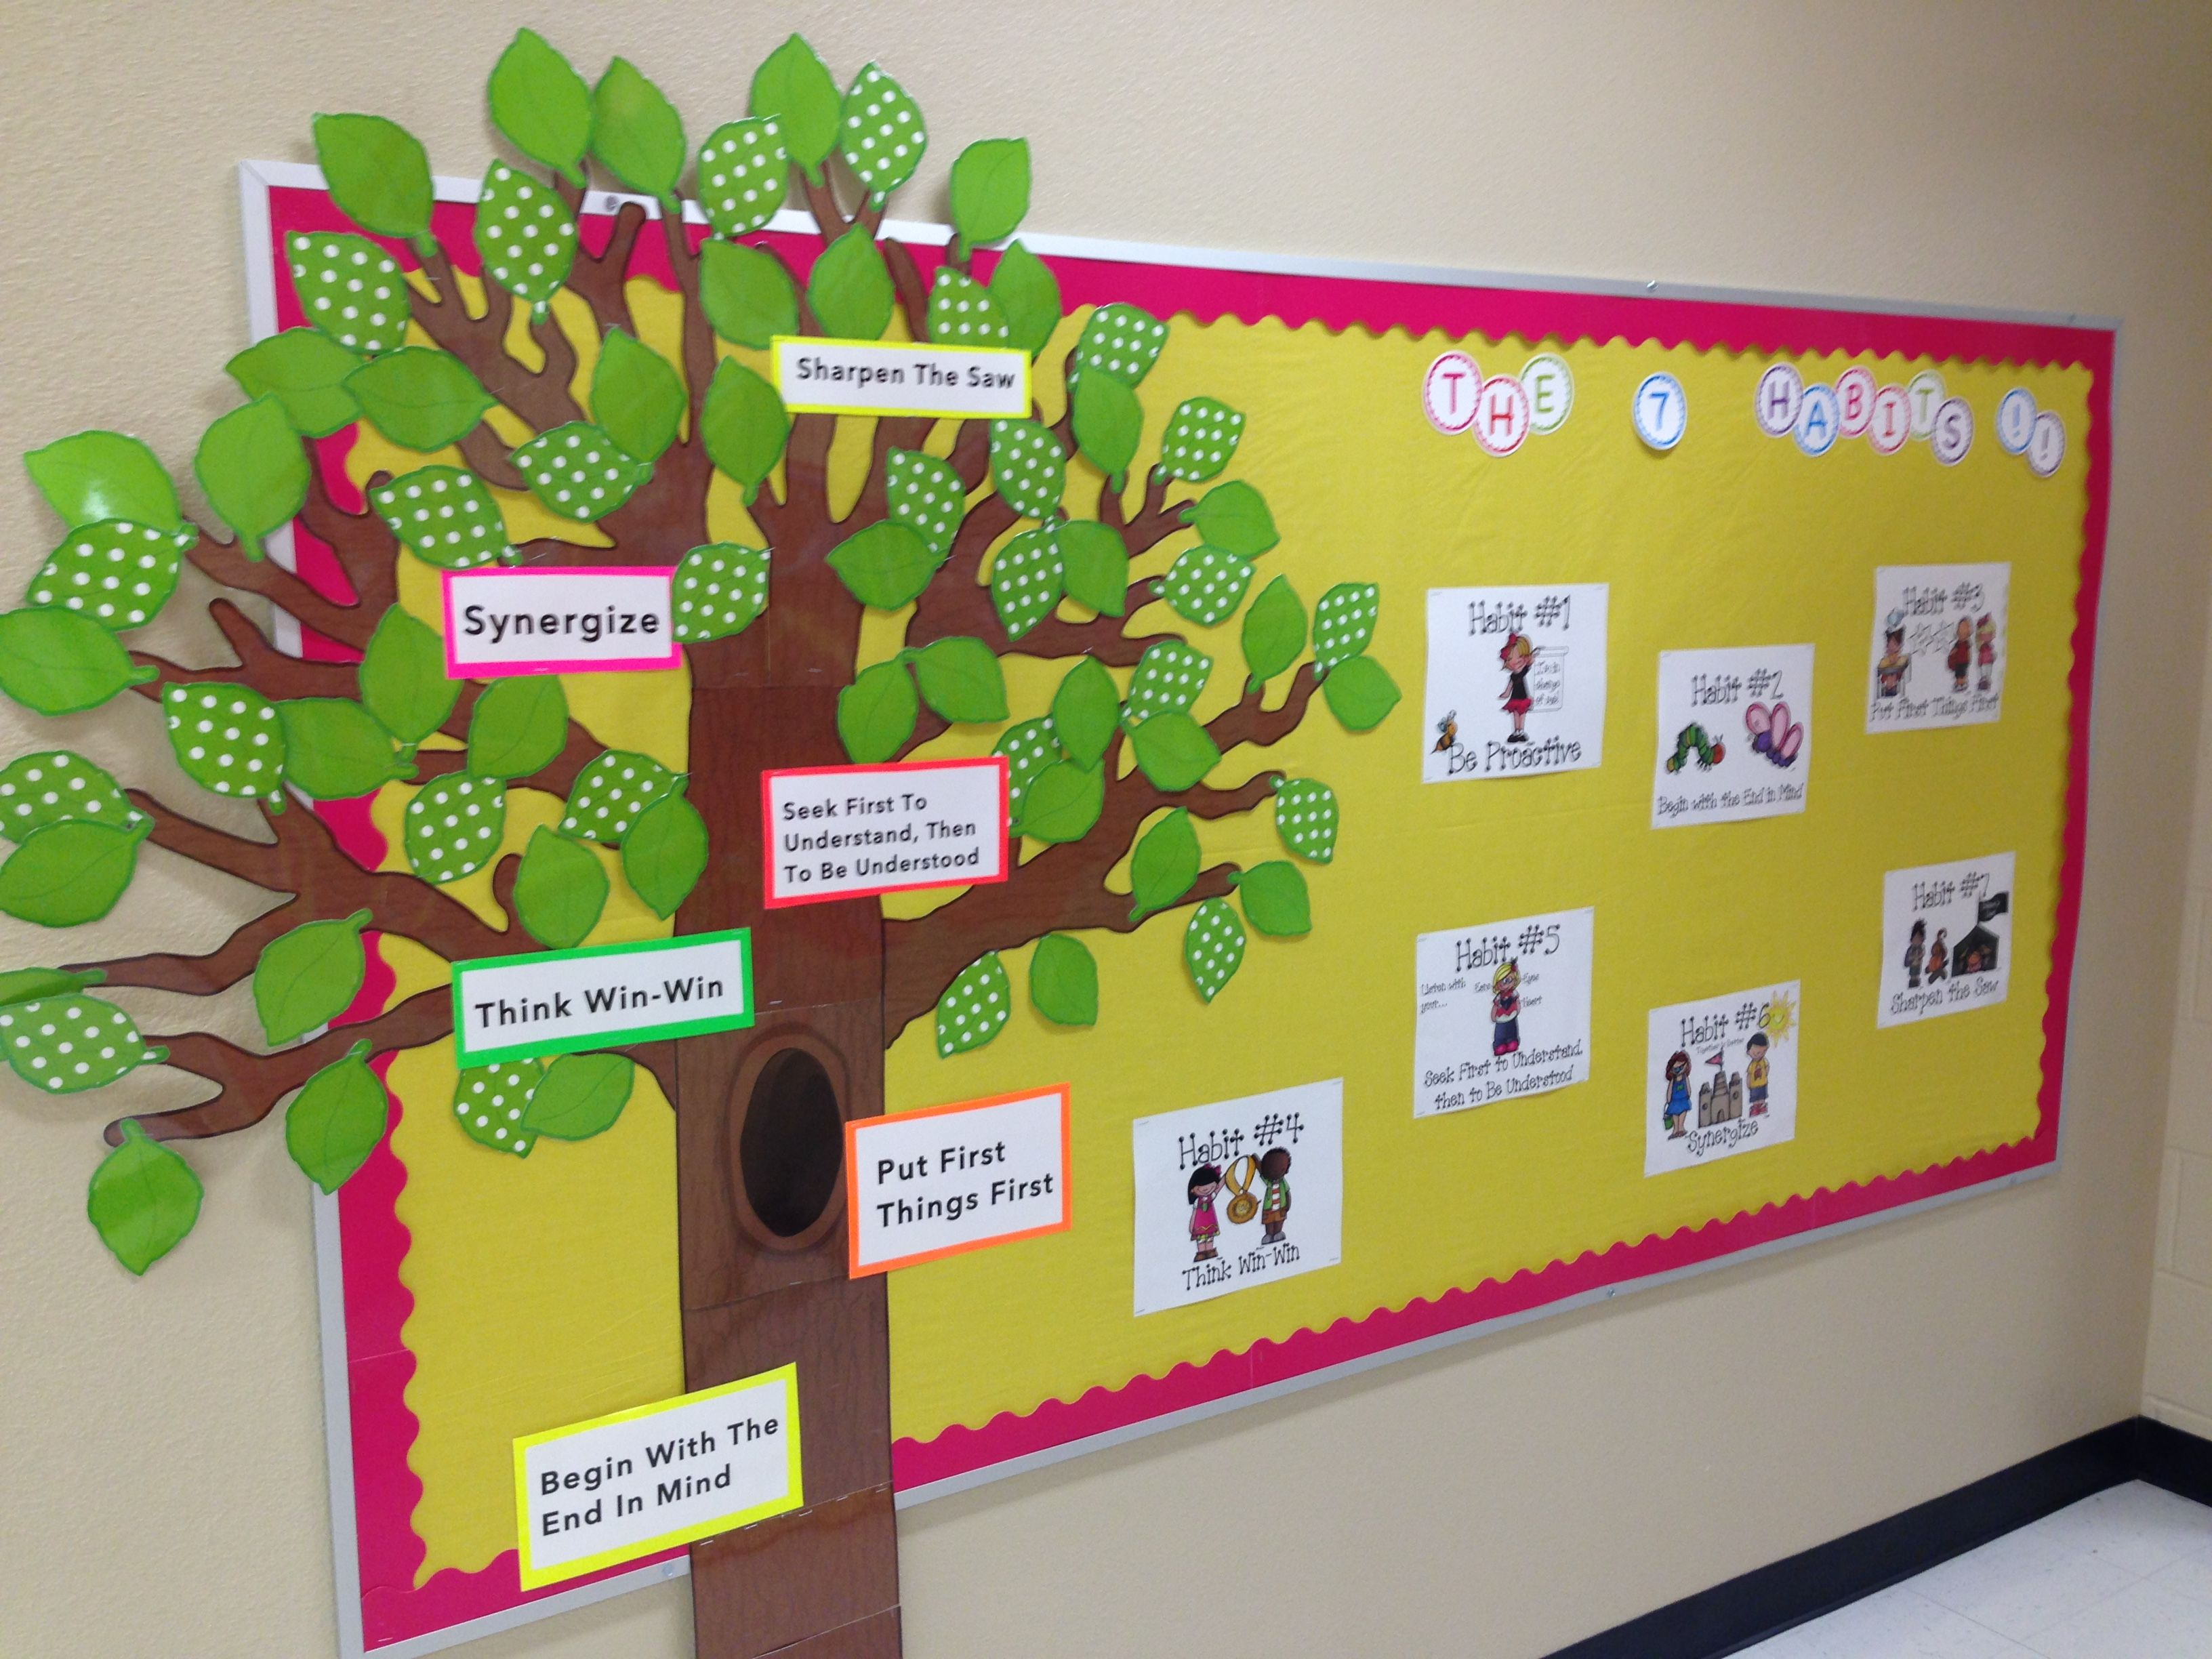 7 Habits Of Happy Kids Tree And Posters